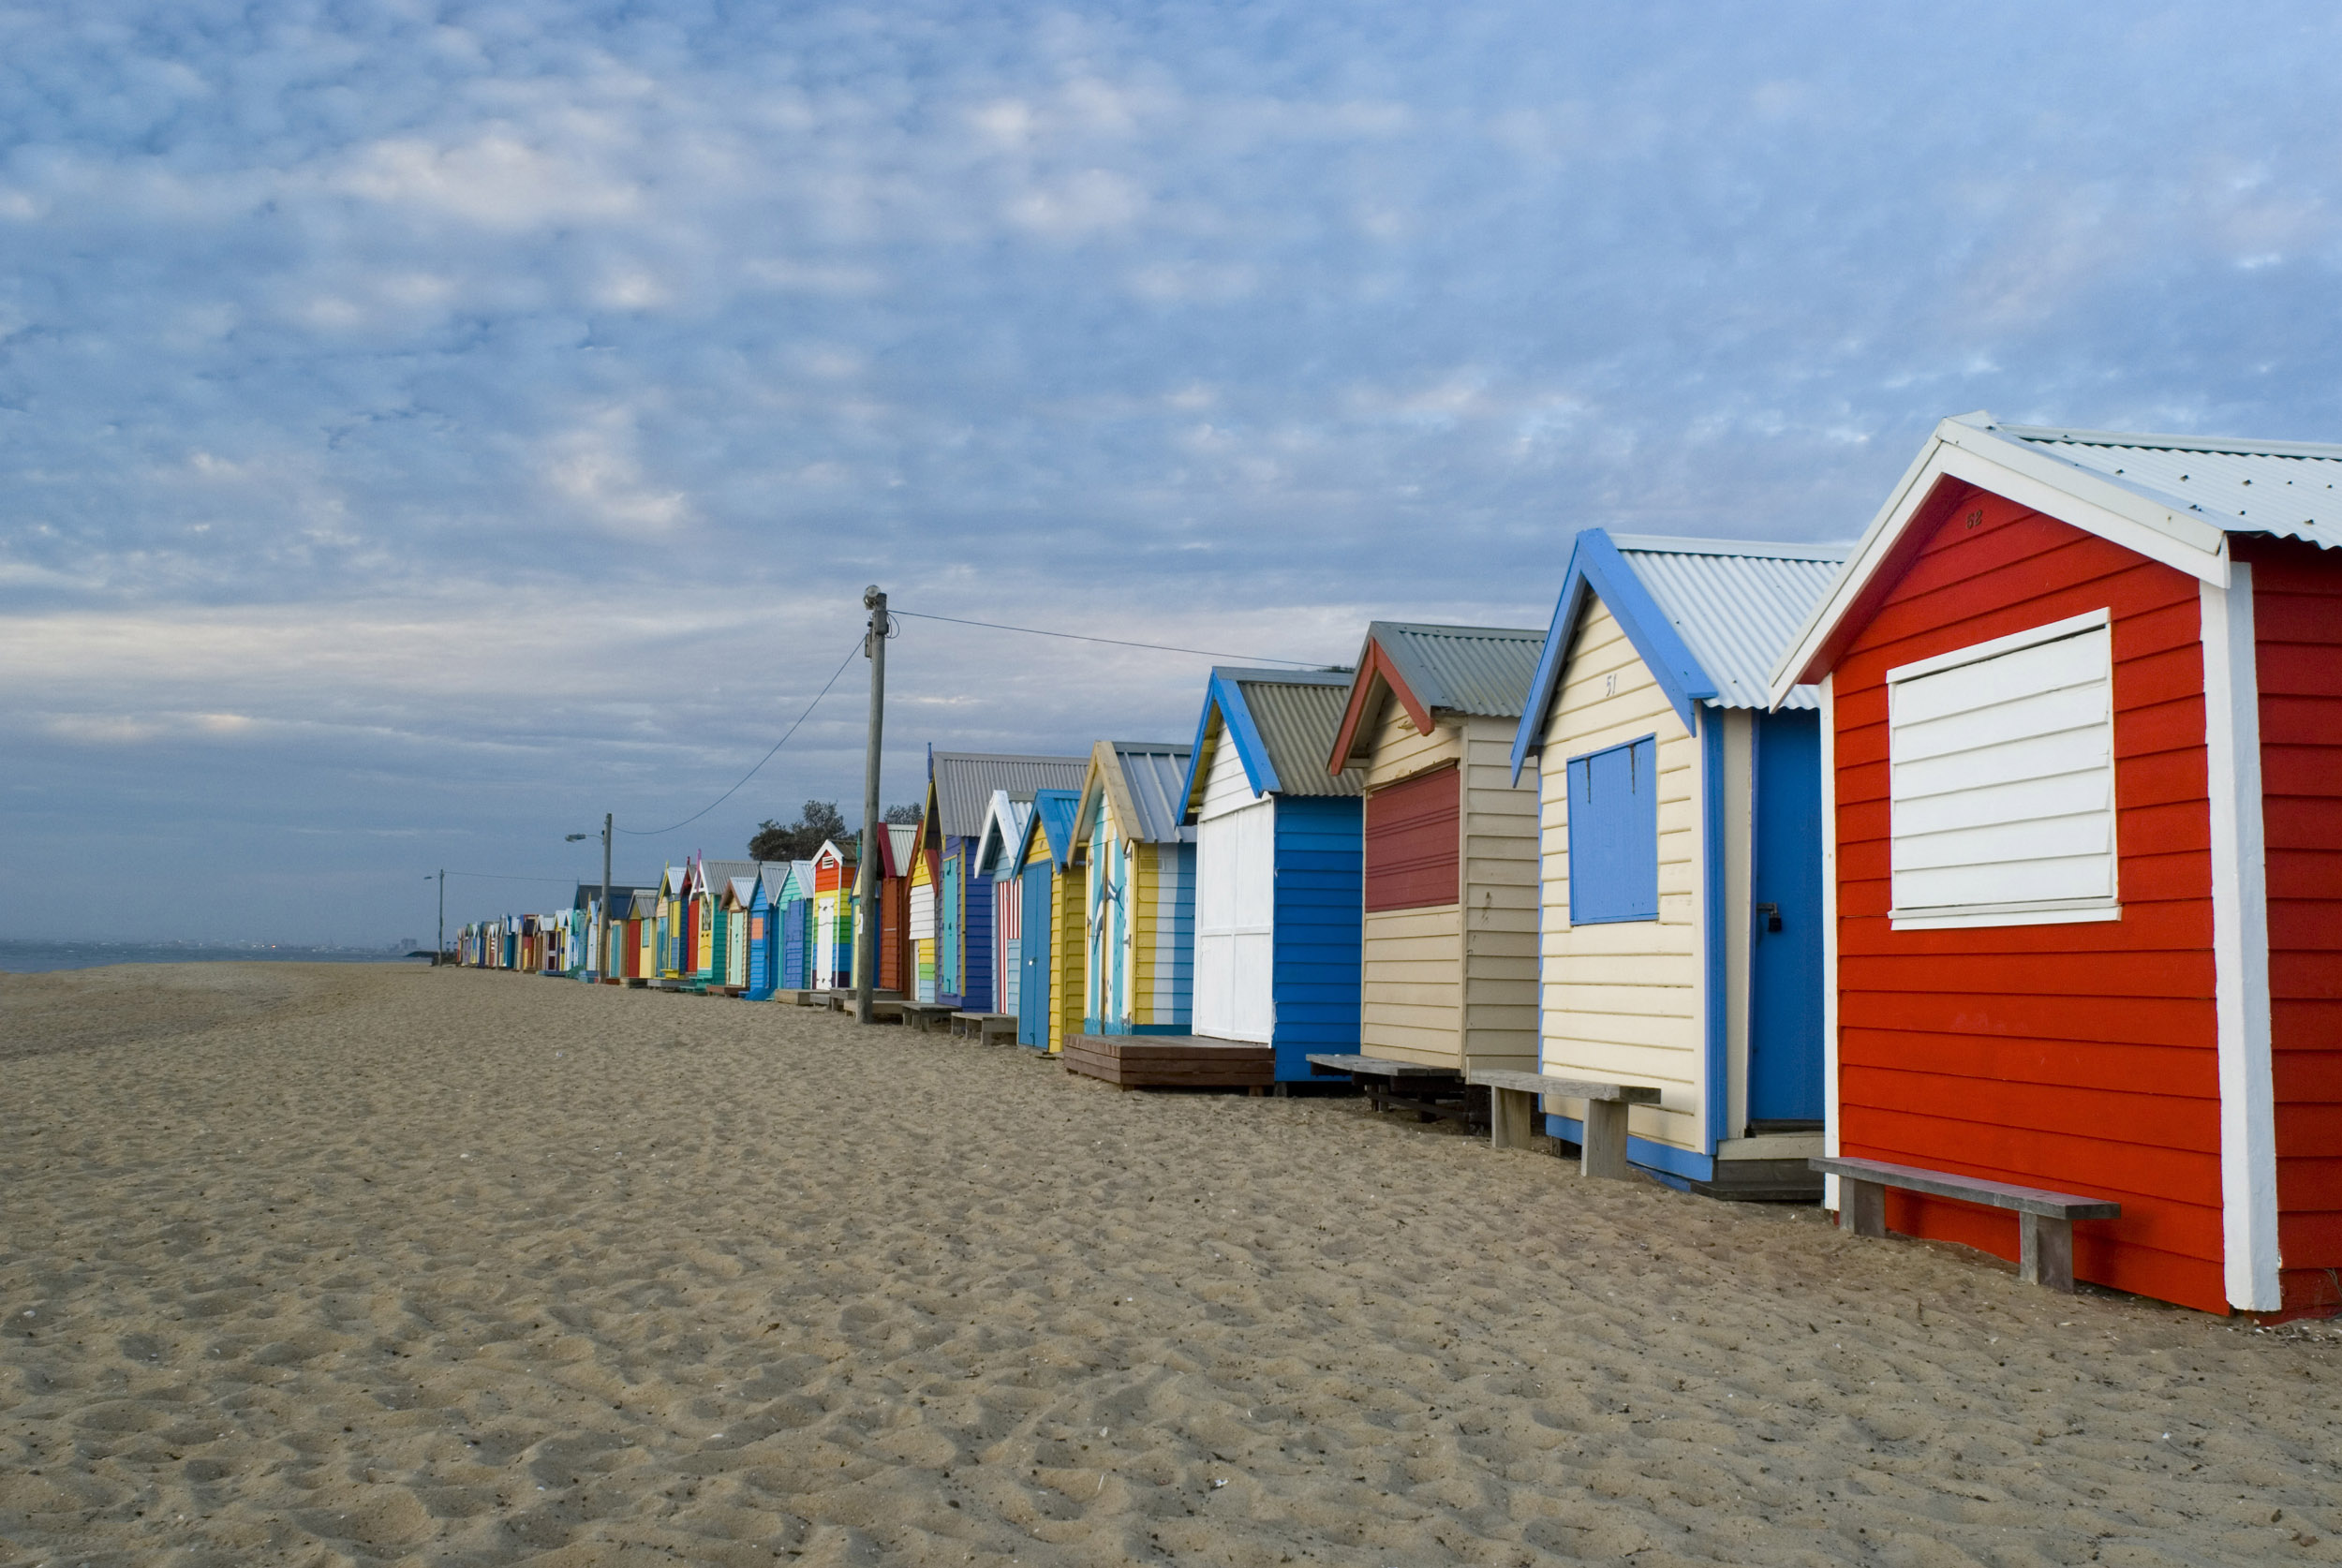 A series of empty, rustic beach huts and shacks on a deserted beach in Brighton near Melbourne, Australia.